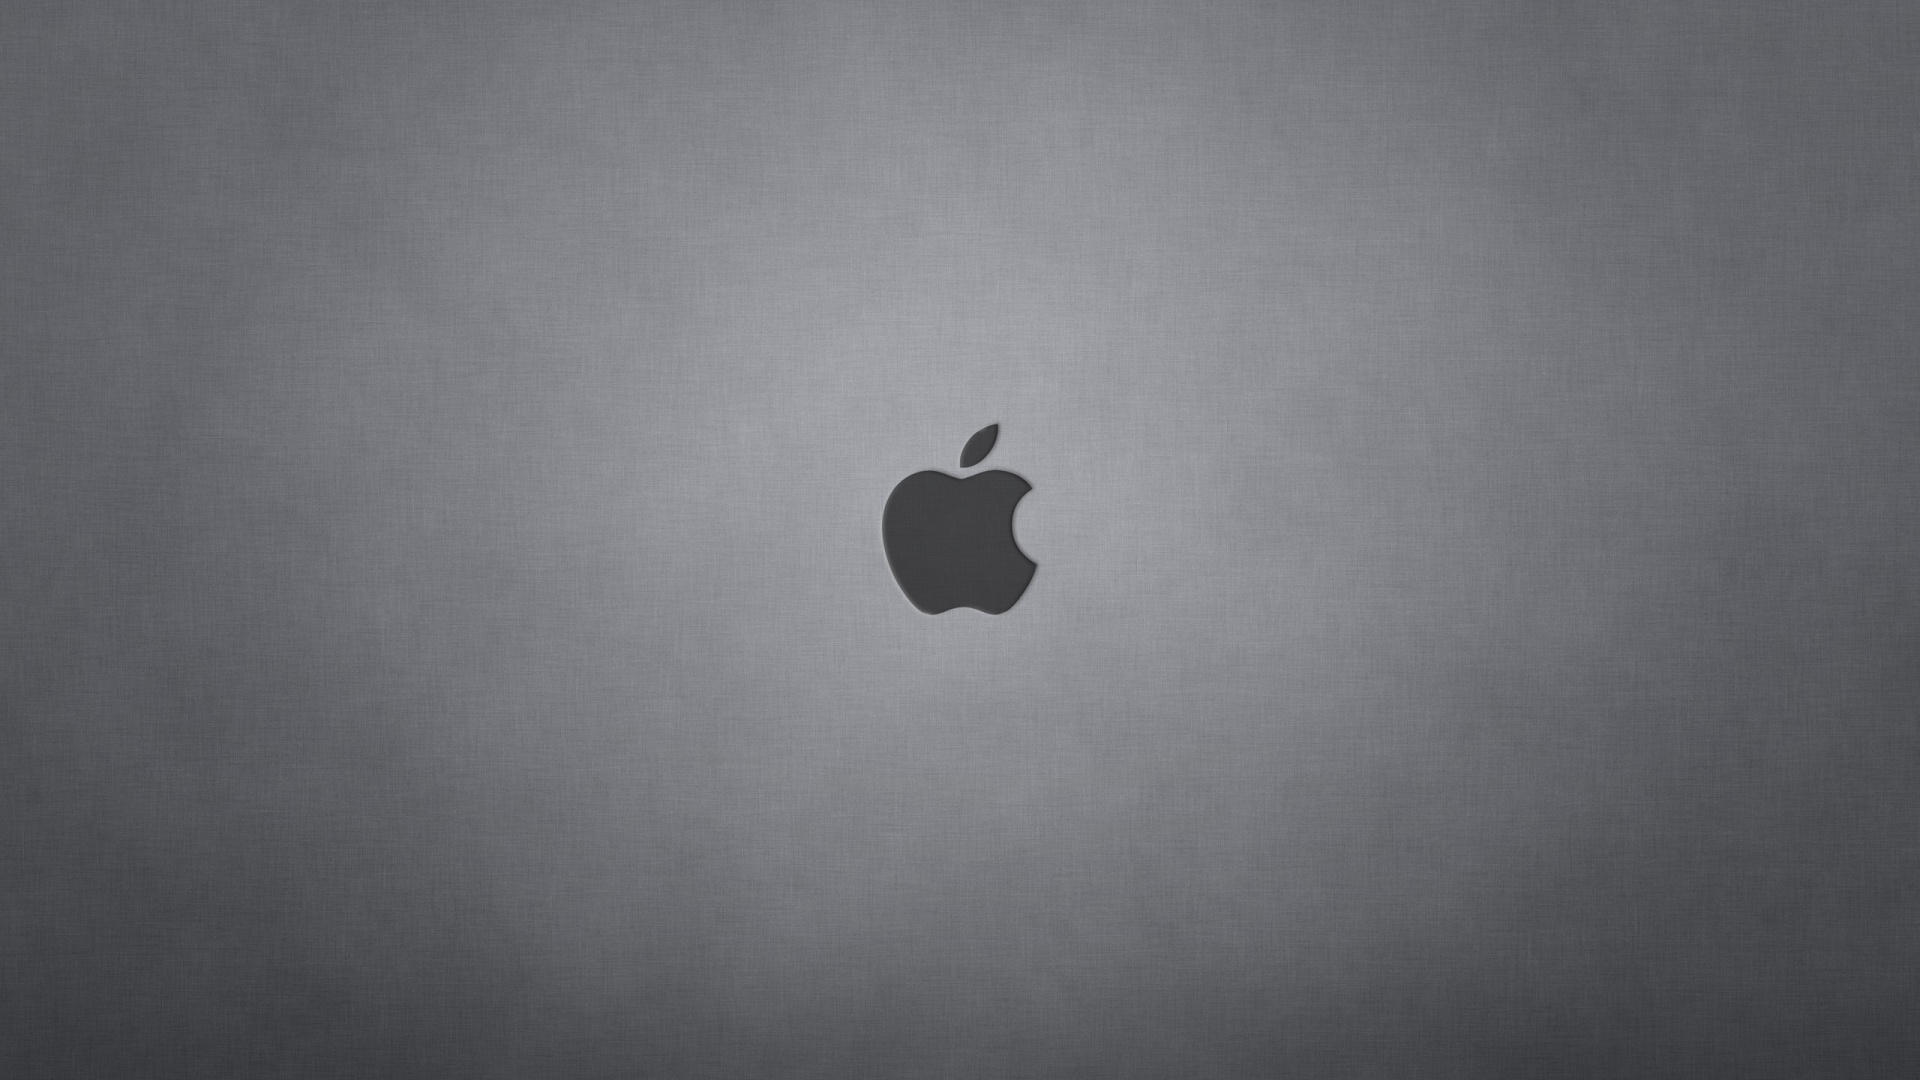 HD Wallpapers Mac